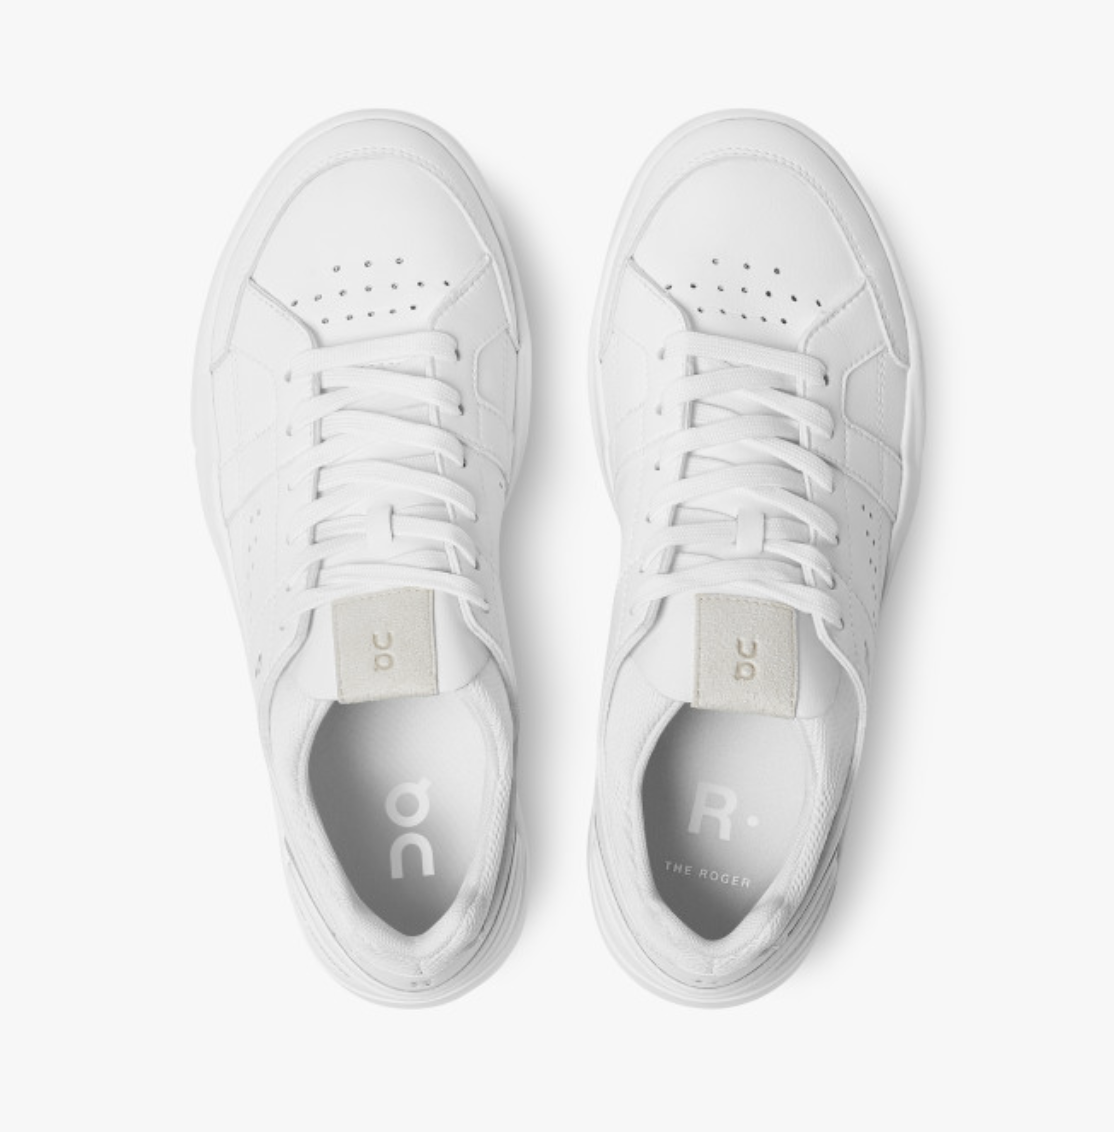 Women's The Roger Clubhouse All White-2